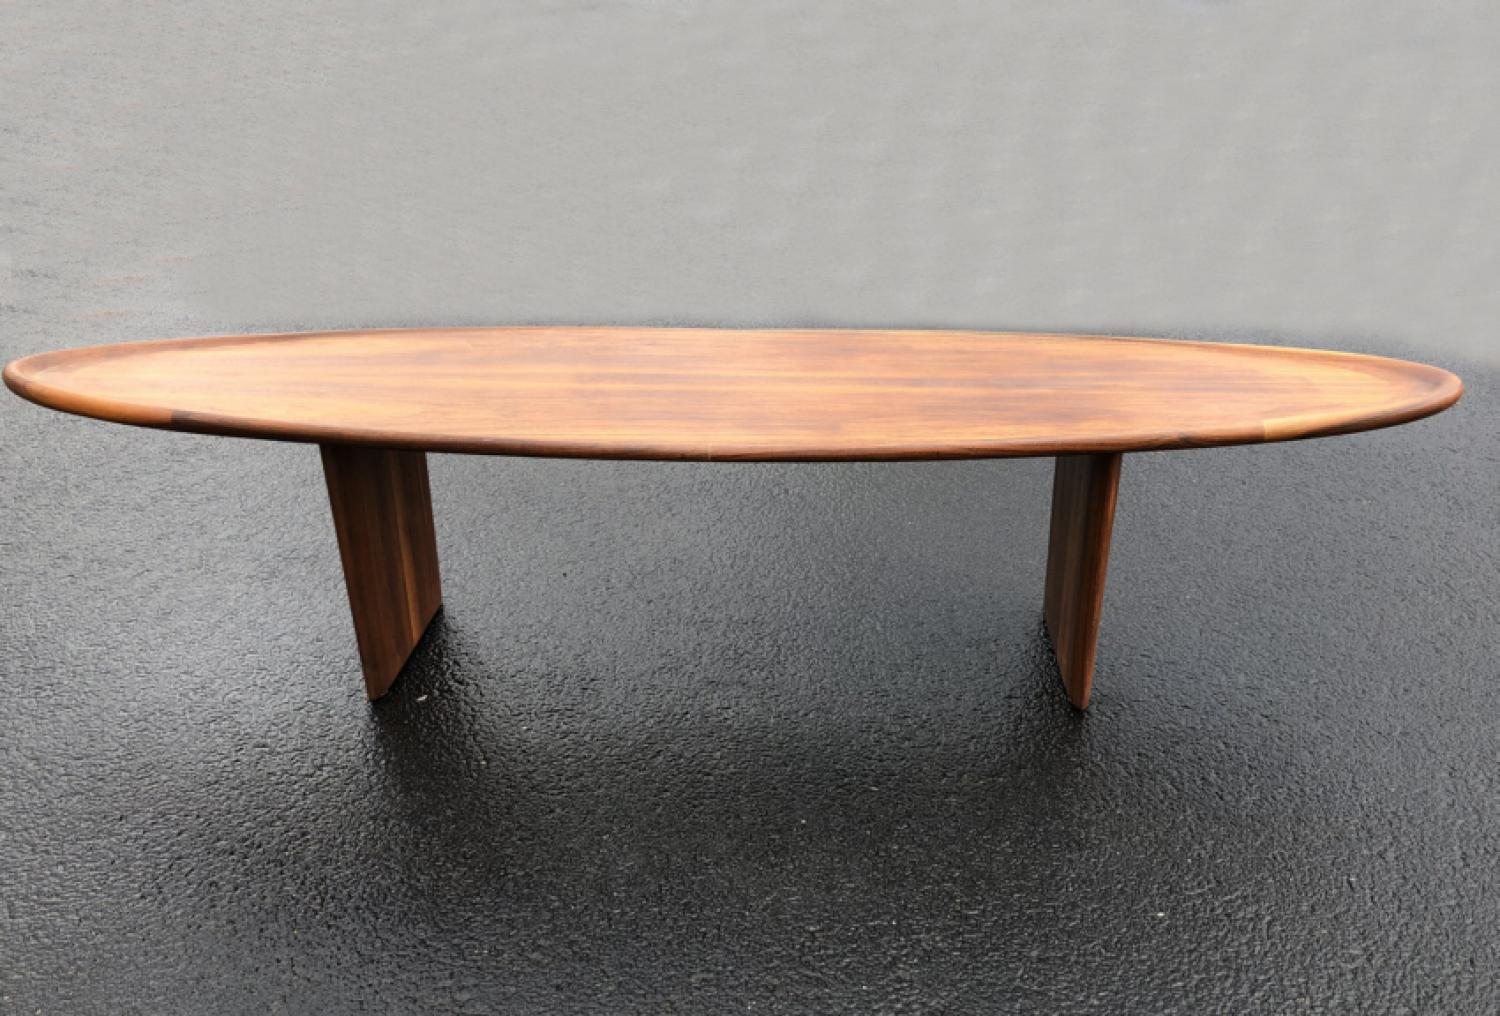 T H Robsjohn Gibbings Widdicomb mid century modern coffee table